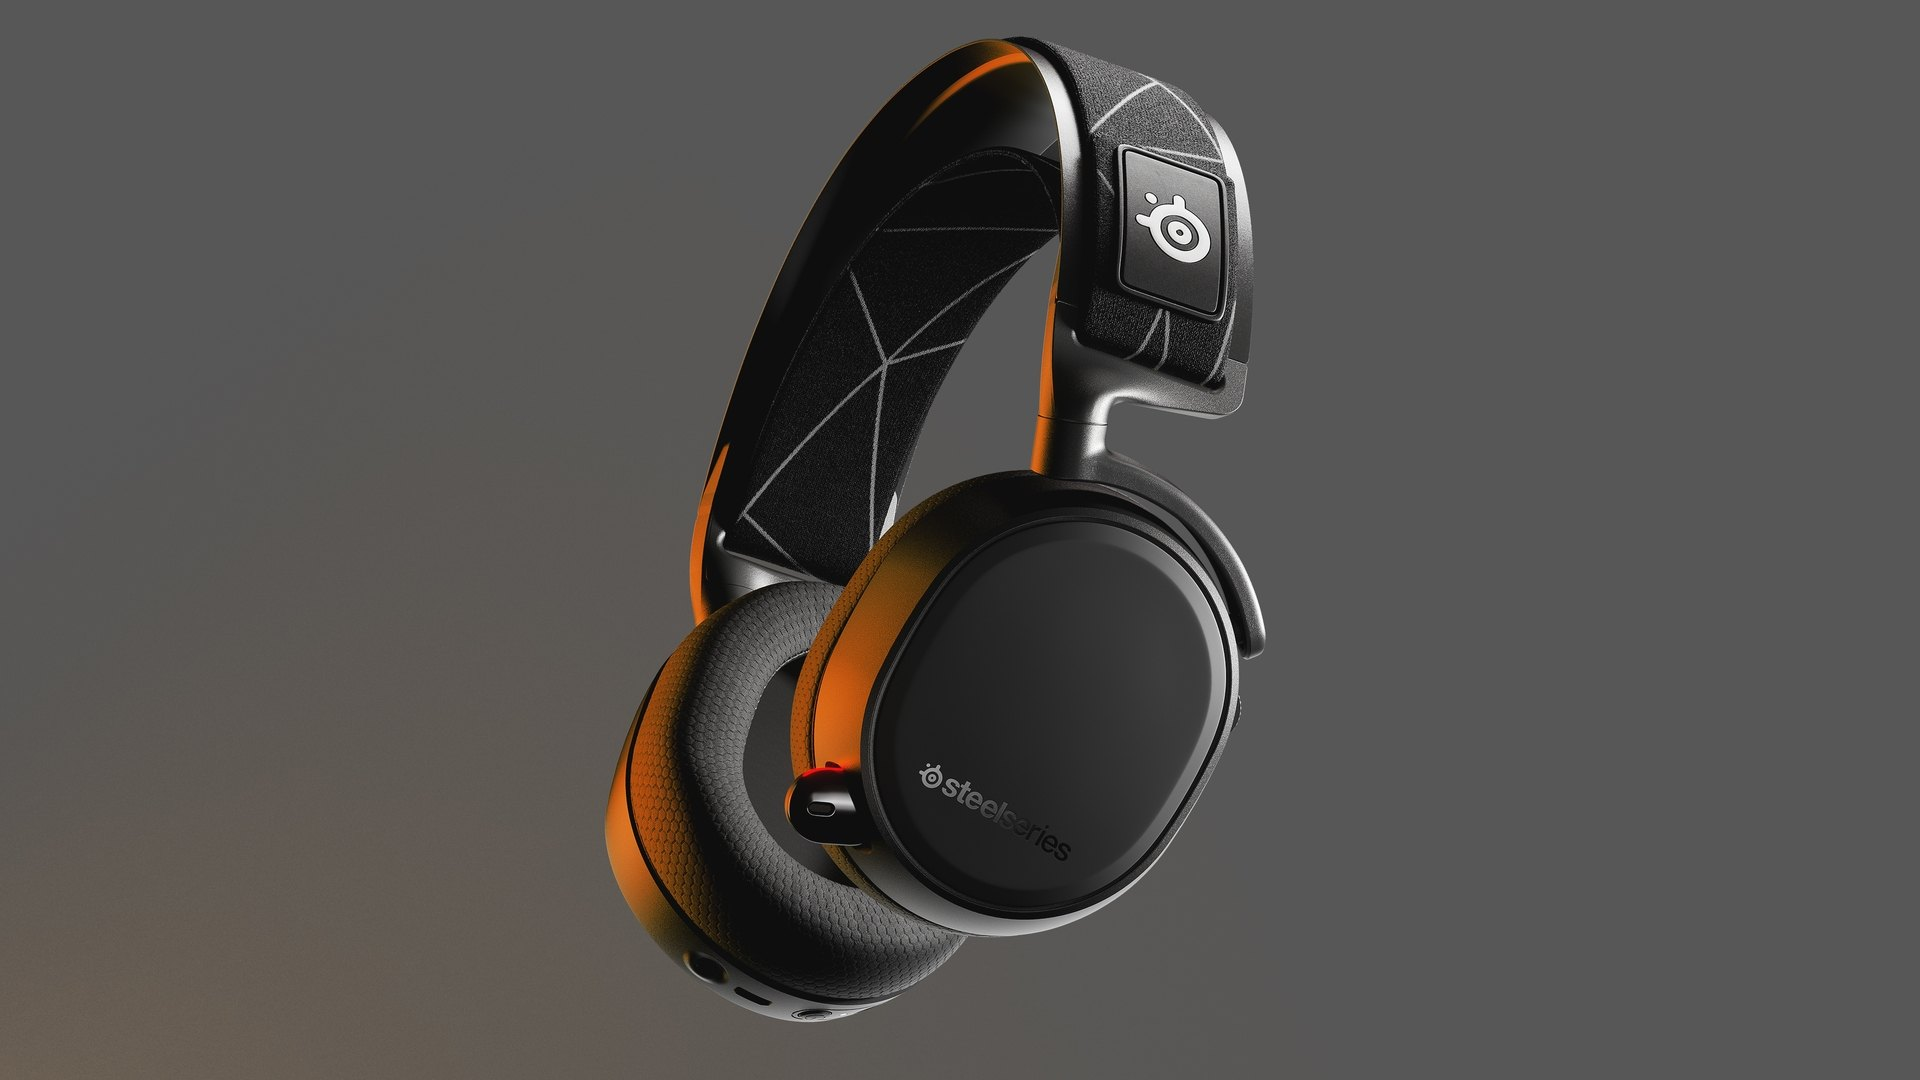 Arctis 9 headset with award for best gaming headset line